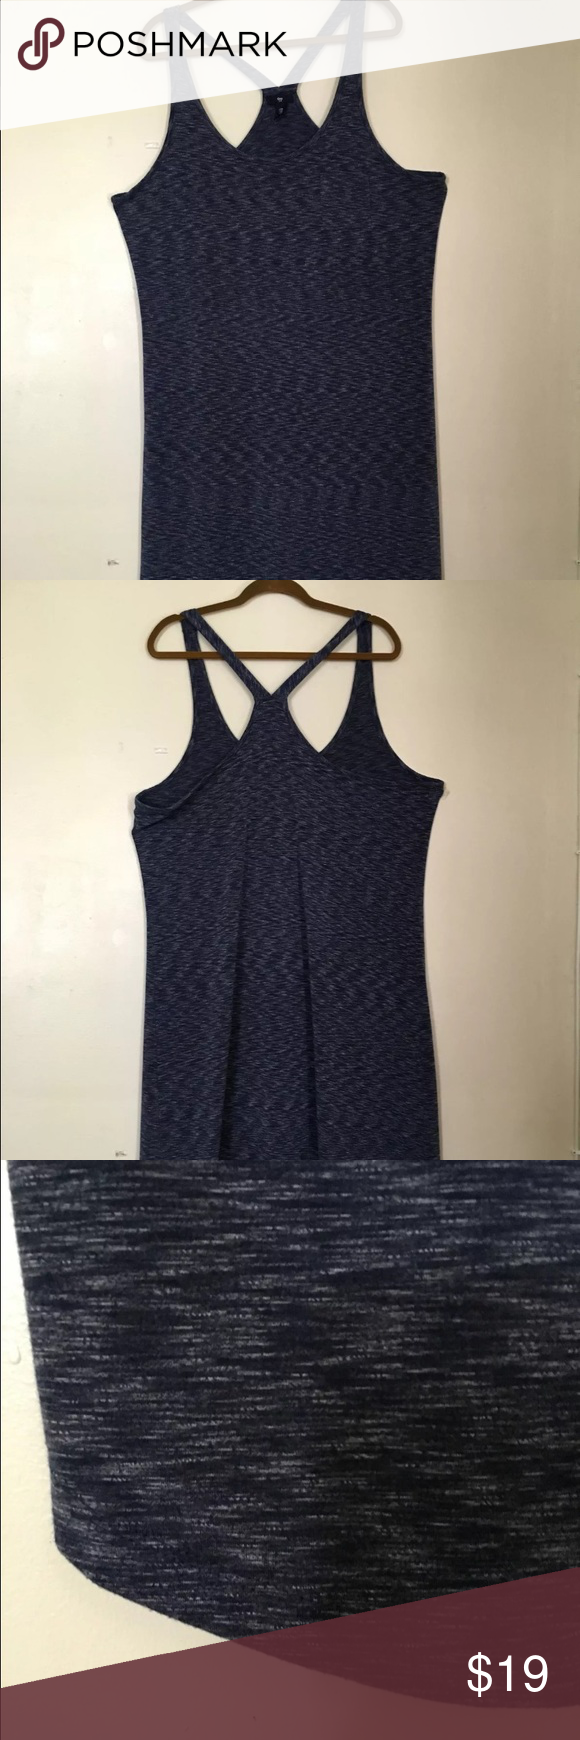 Gap Dress Measurements taken flat Underarm to underarm 24 ...